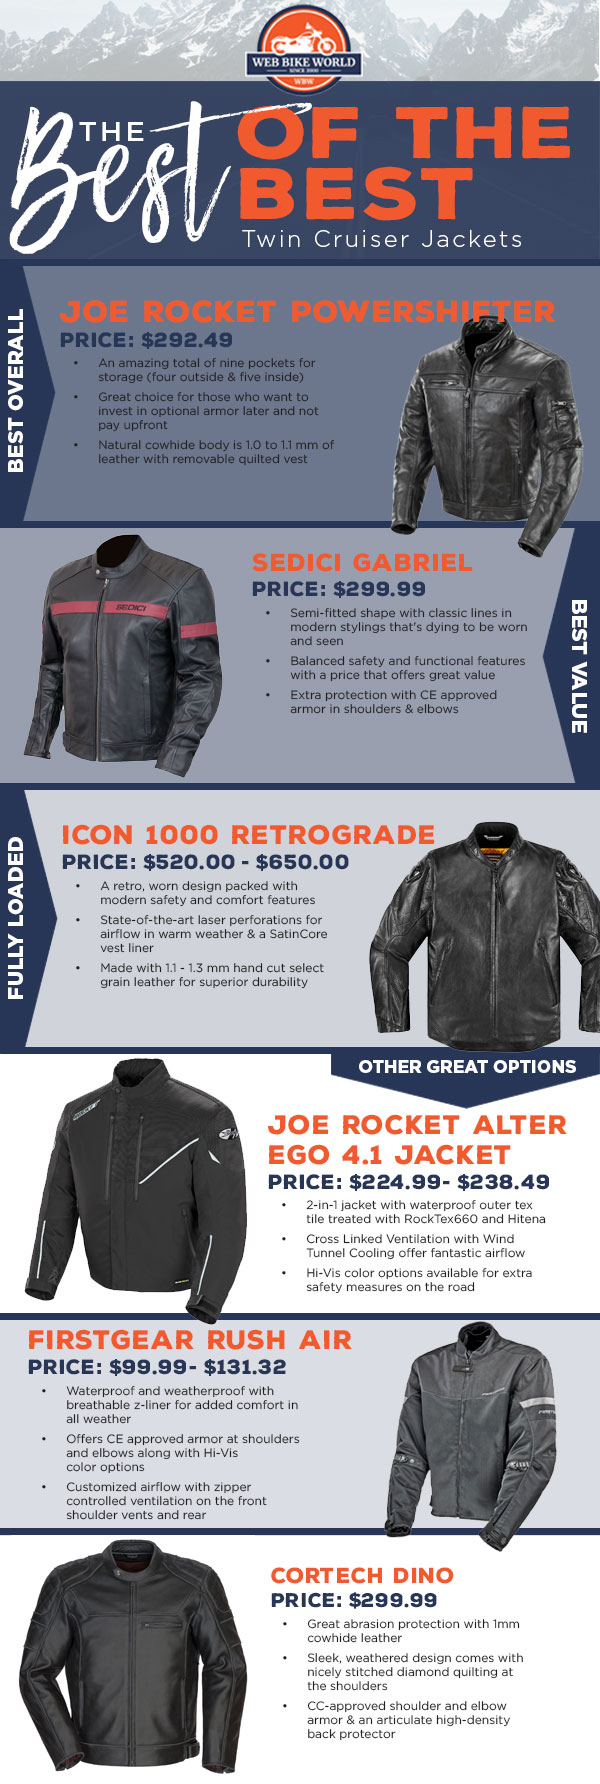 The Best V-Twin/Cruiser Jackets of 2019 Infographic